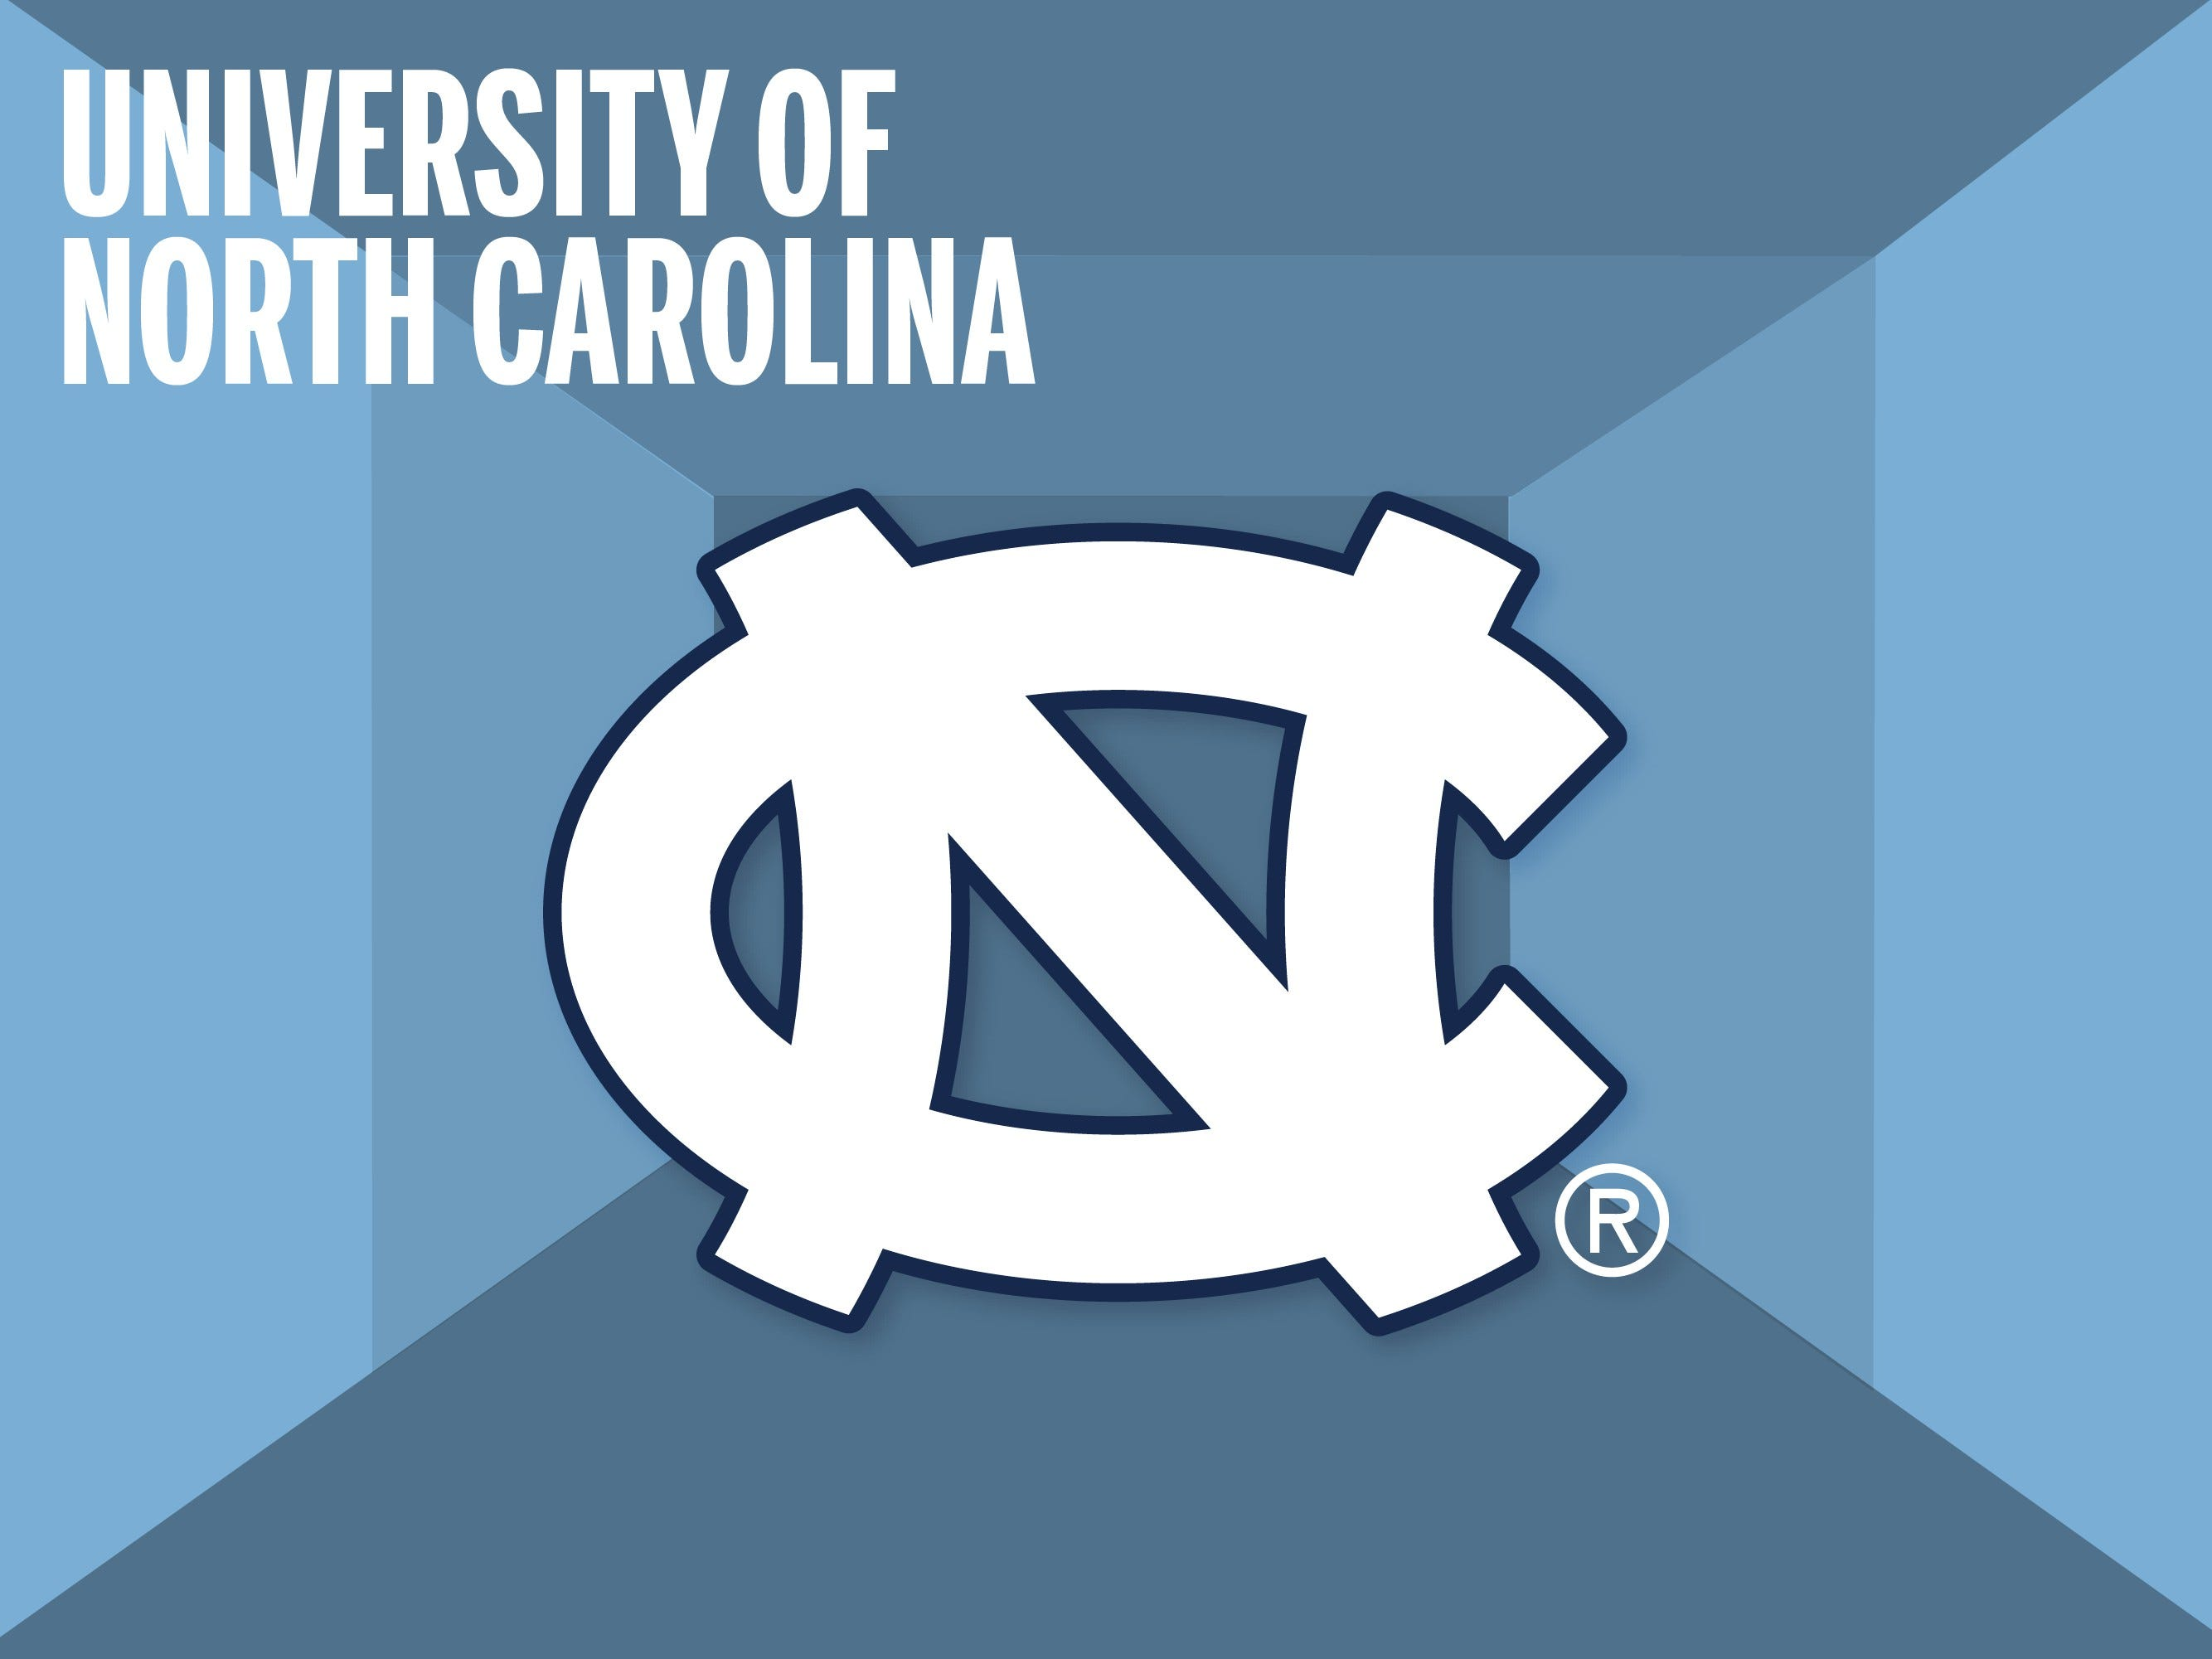 University of North Carolina College Fan Shop